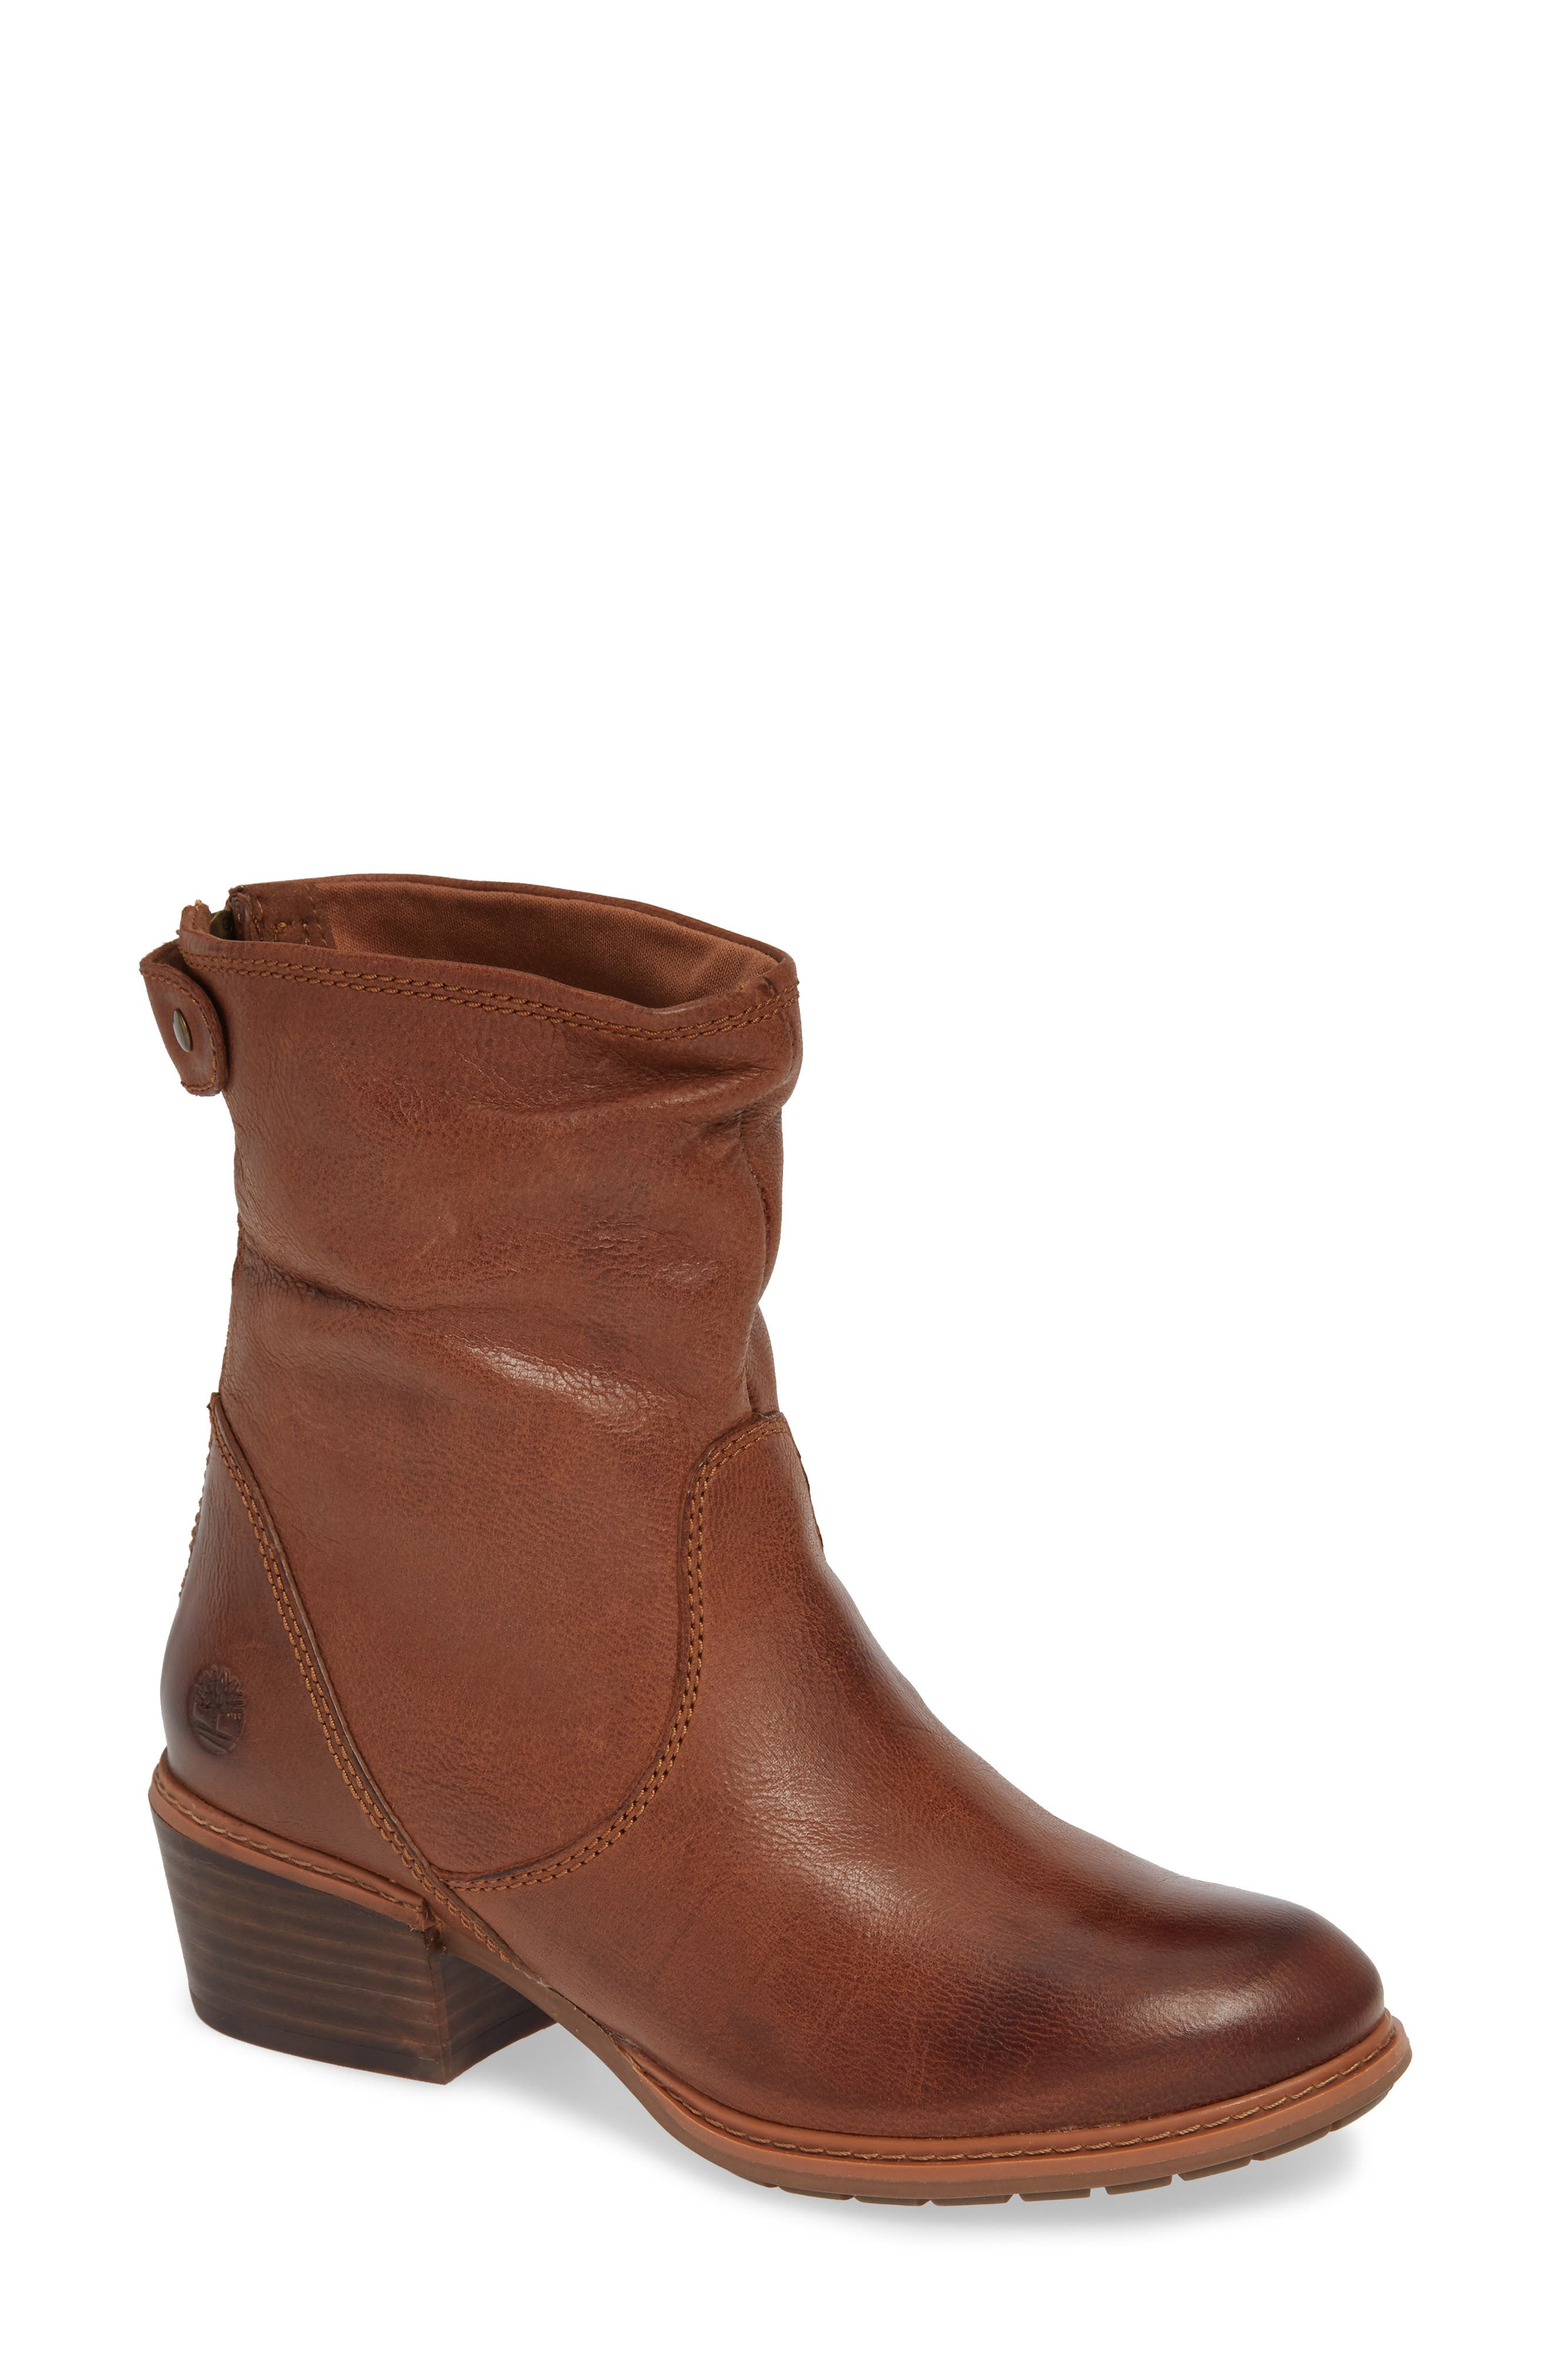 Sutherlin Bay Water Resistant Bootie,                         Main,                         color, ARGAN OIL LEATHER